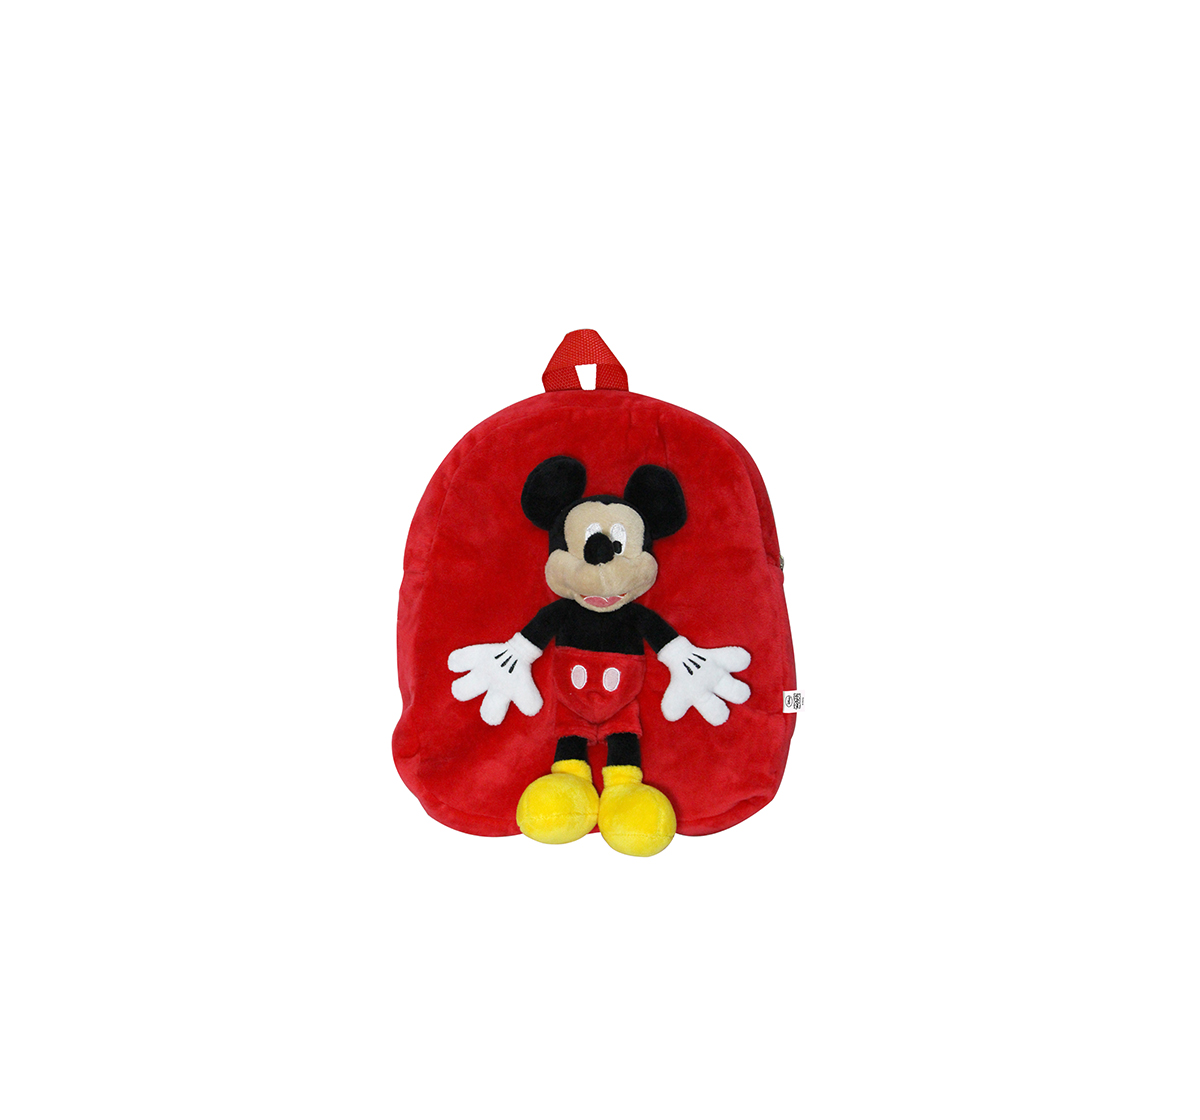 Disney | Disney Happiness Unisex Minnie Backpack_Pink_Free Size Plush Accessories for Kids age 12M+ - 30.48 Cm